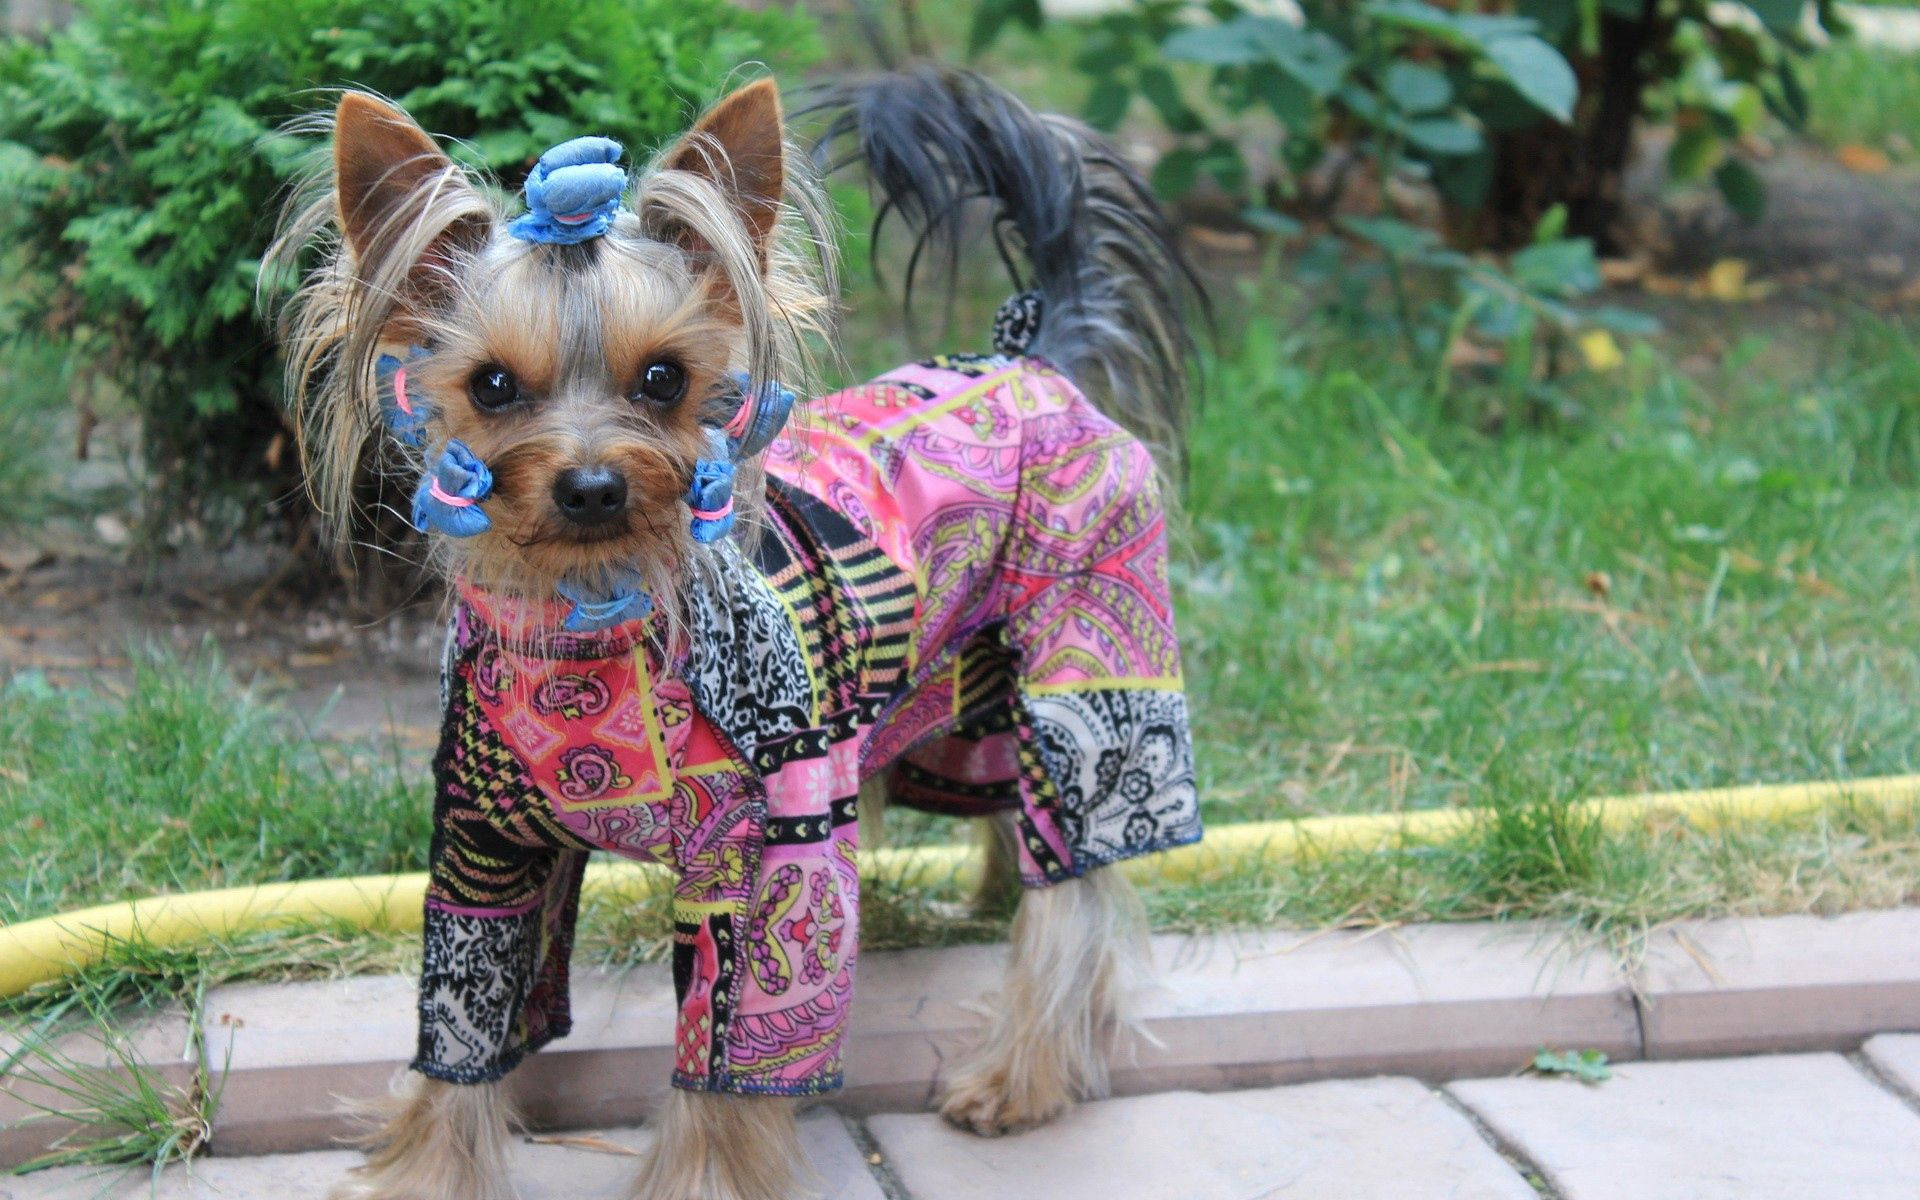 65290 download wallpaper Animals, Yorkshire Terrier, Costume, Dog, Puppy screensavers and pictures for free